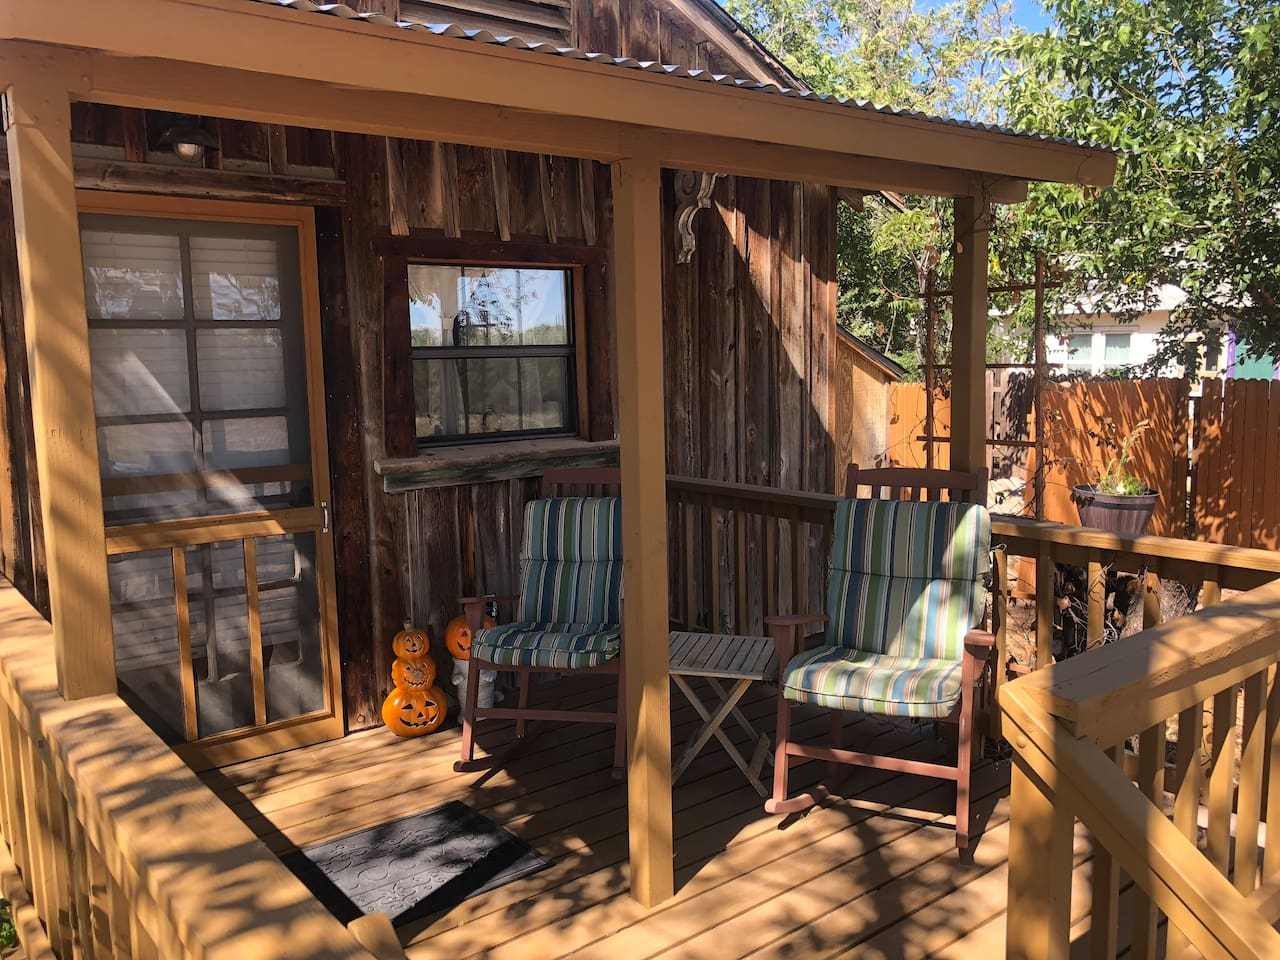 Front porch with rocking chairs is perfect for enjoying and taking in the quiet surrounding. As well as enjoying the stars at night.